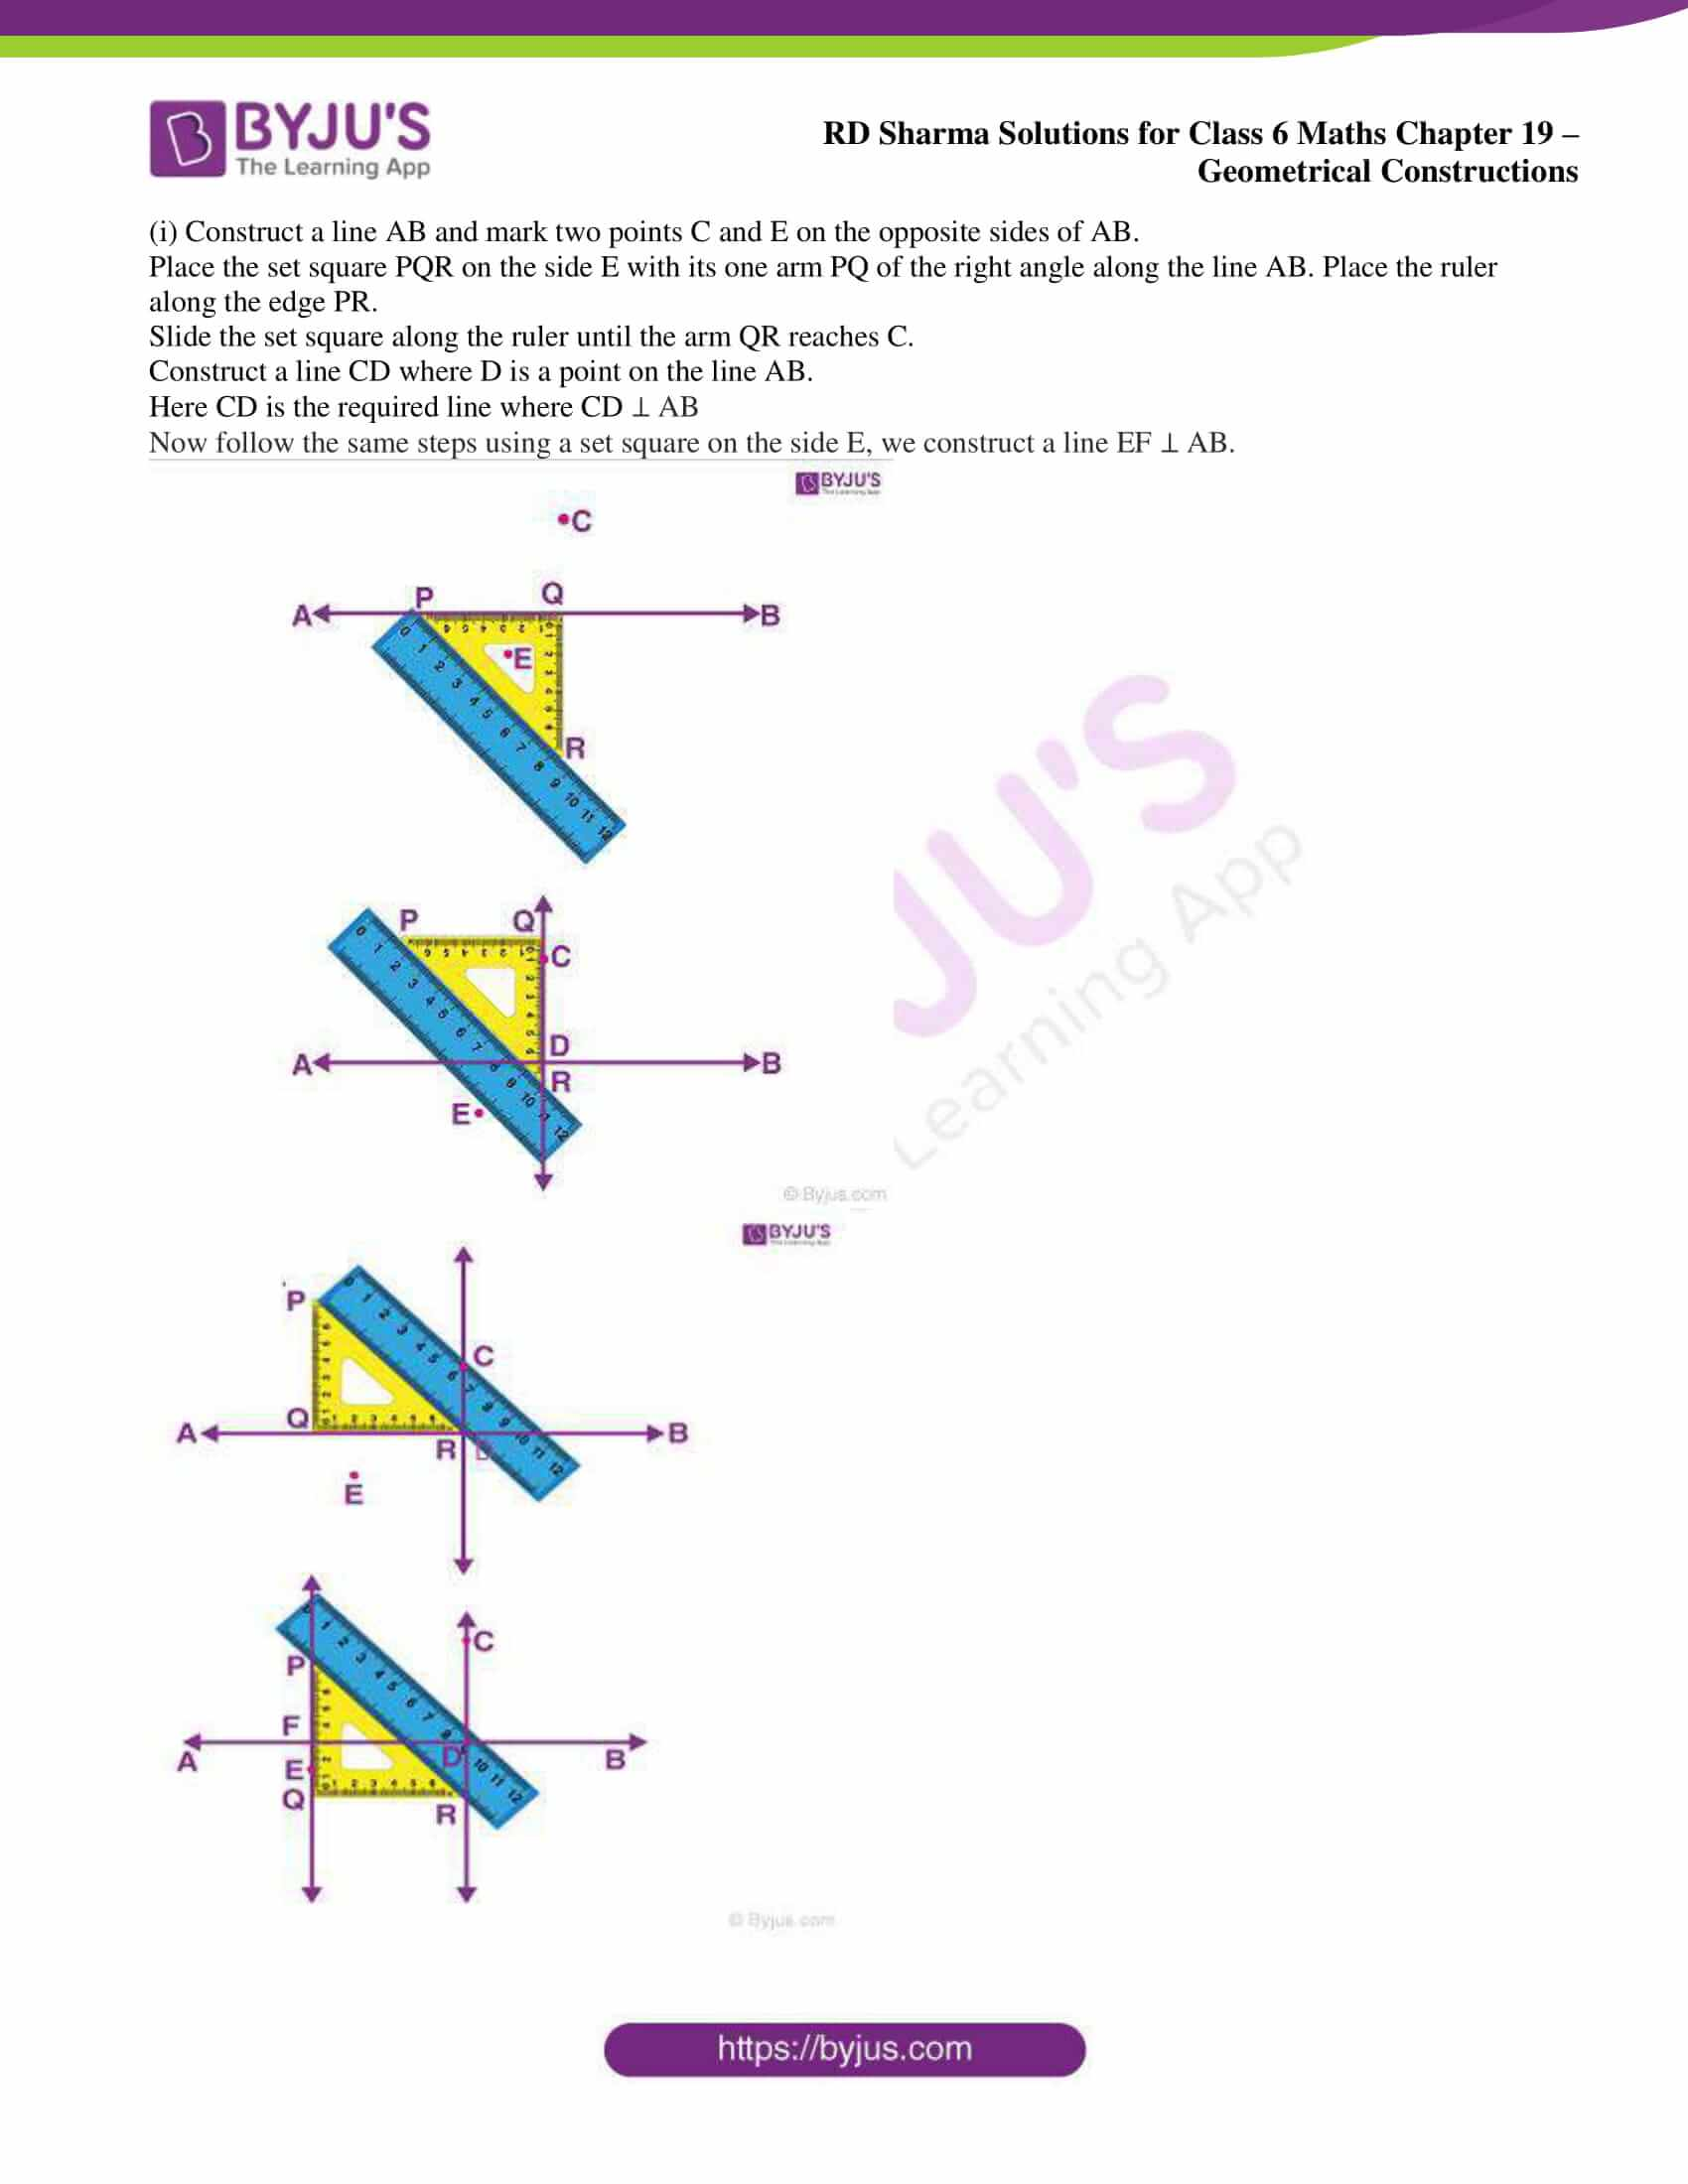 rd sharma solutions nov2020 class 6 maths chapter 19 exercise 2 4